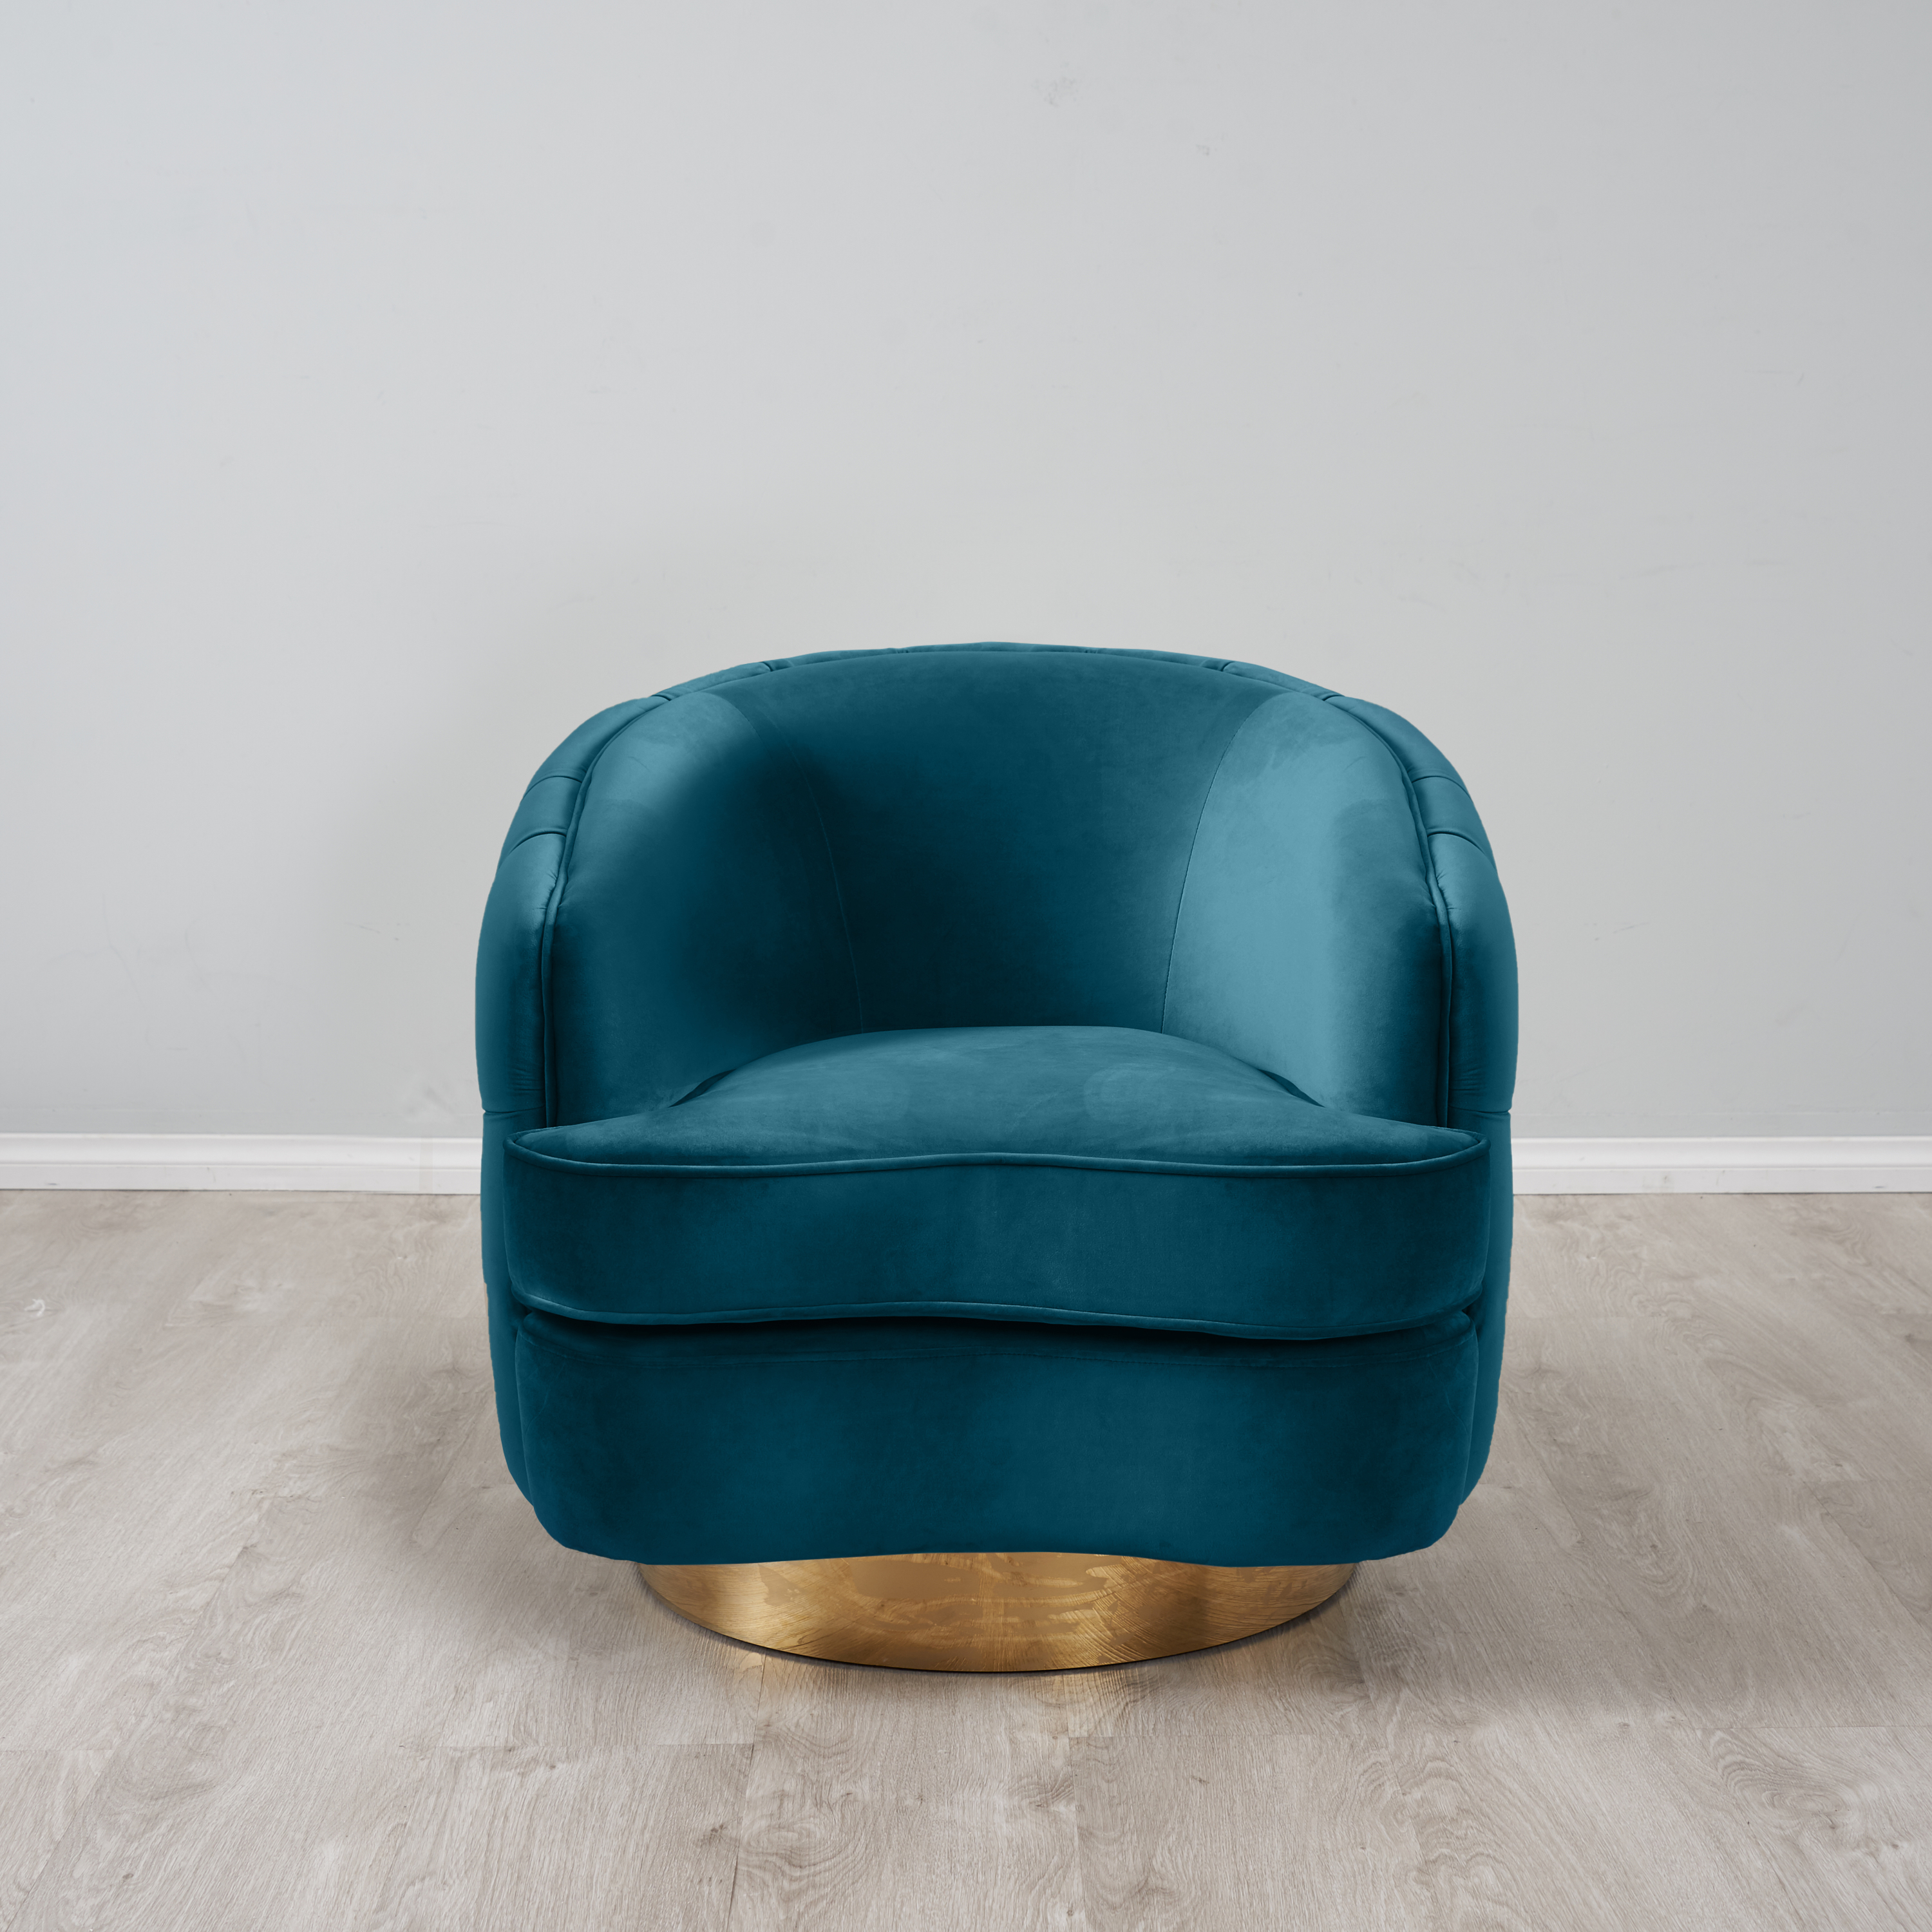 Kelly Swivel Chair - Peacock Blue with Gold Leg